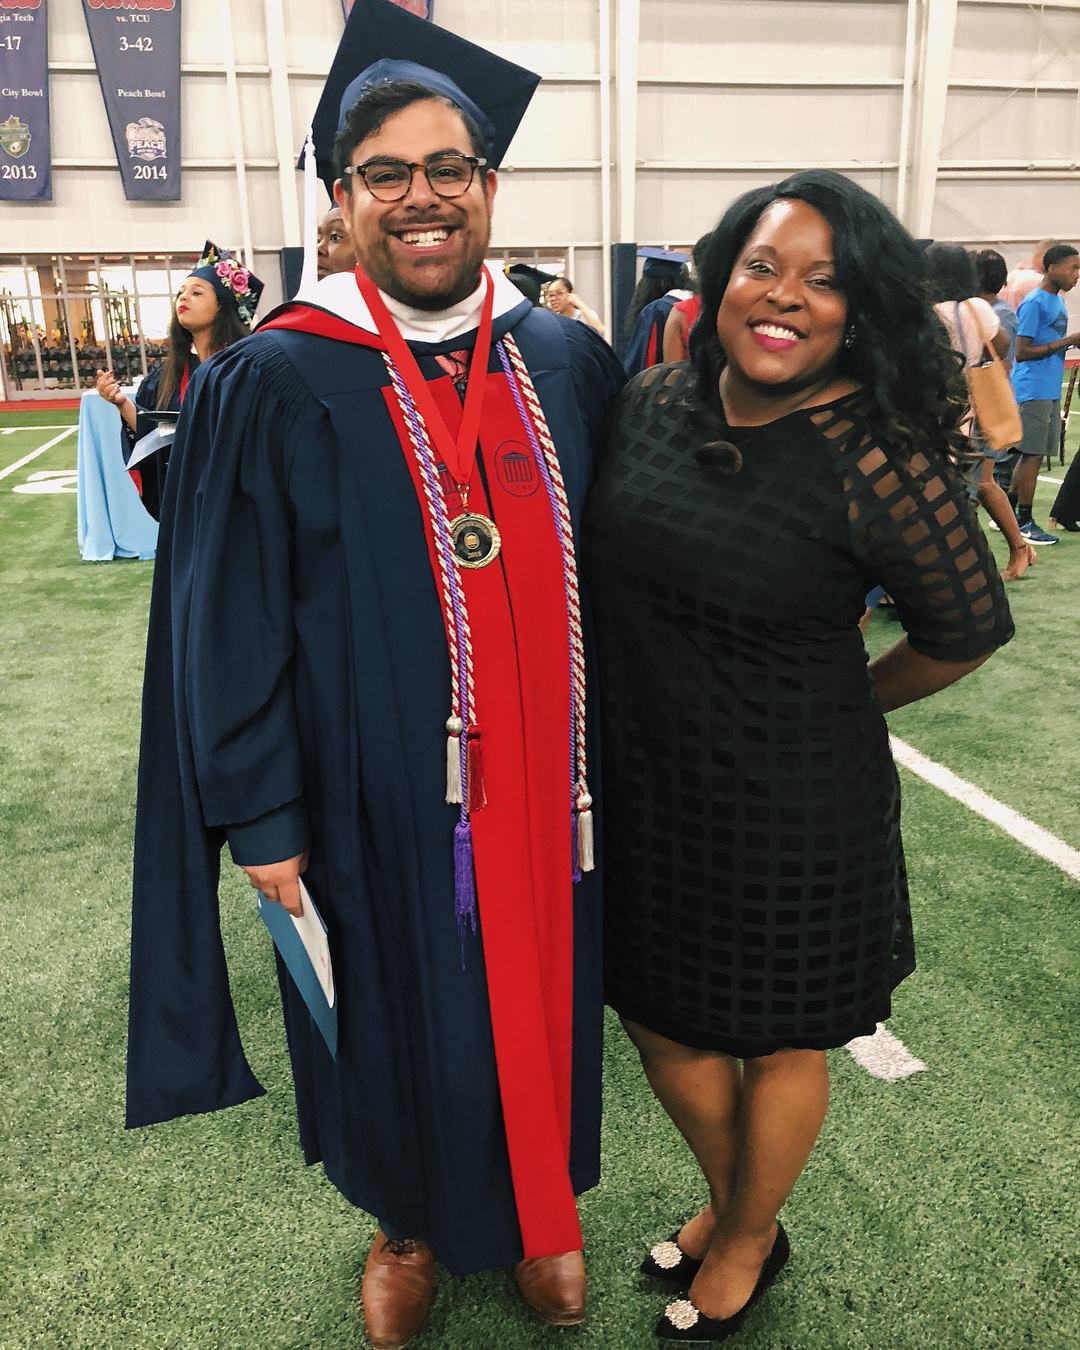 White with former CICCE graduate assistant Edwin Bynoe at the 2018 Celebration of Achievement ceremony.